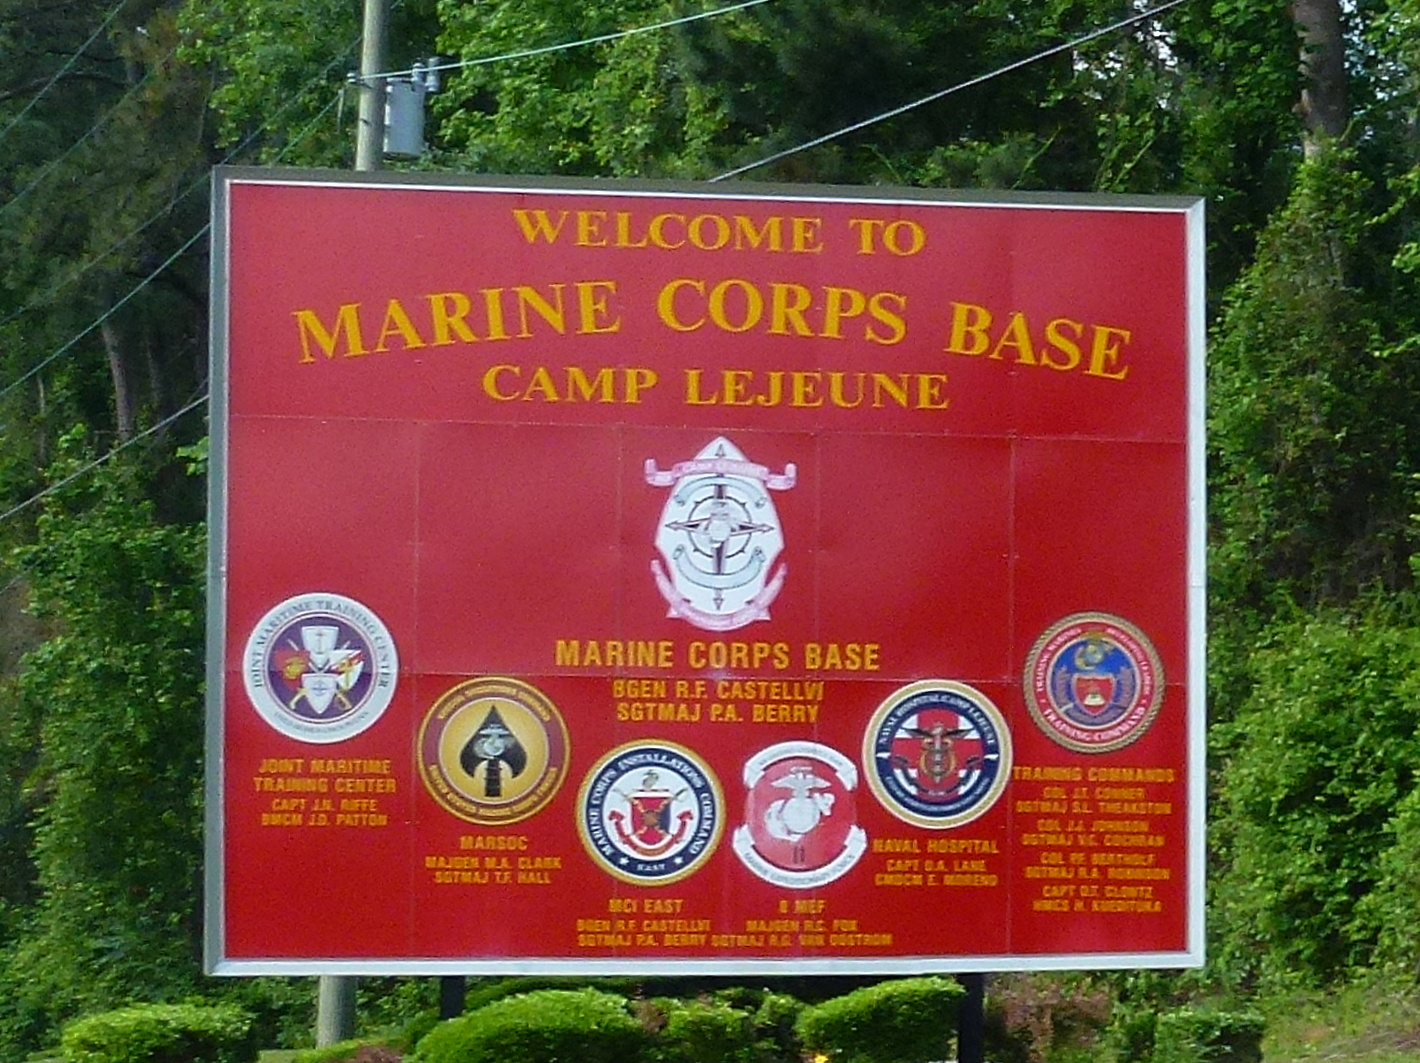 camp lejeune Marine corps base camp lejeune is located in jacksonville, north carolina and encompasses 246 square-miles camp lejeune is home to the marine expeditionary force (ii mef) which is composed of ground, air and logistics units.